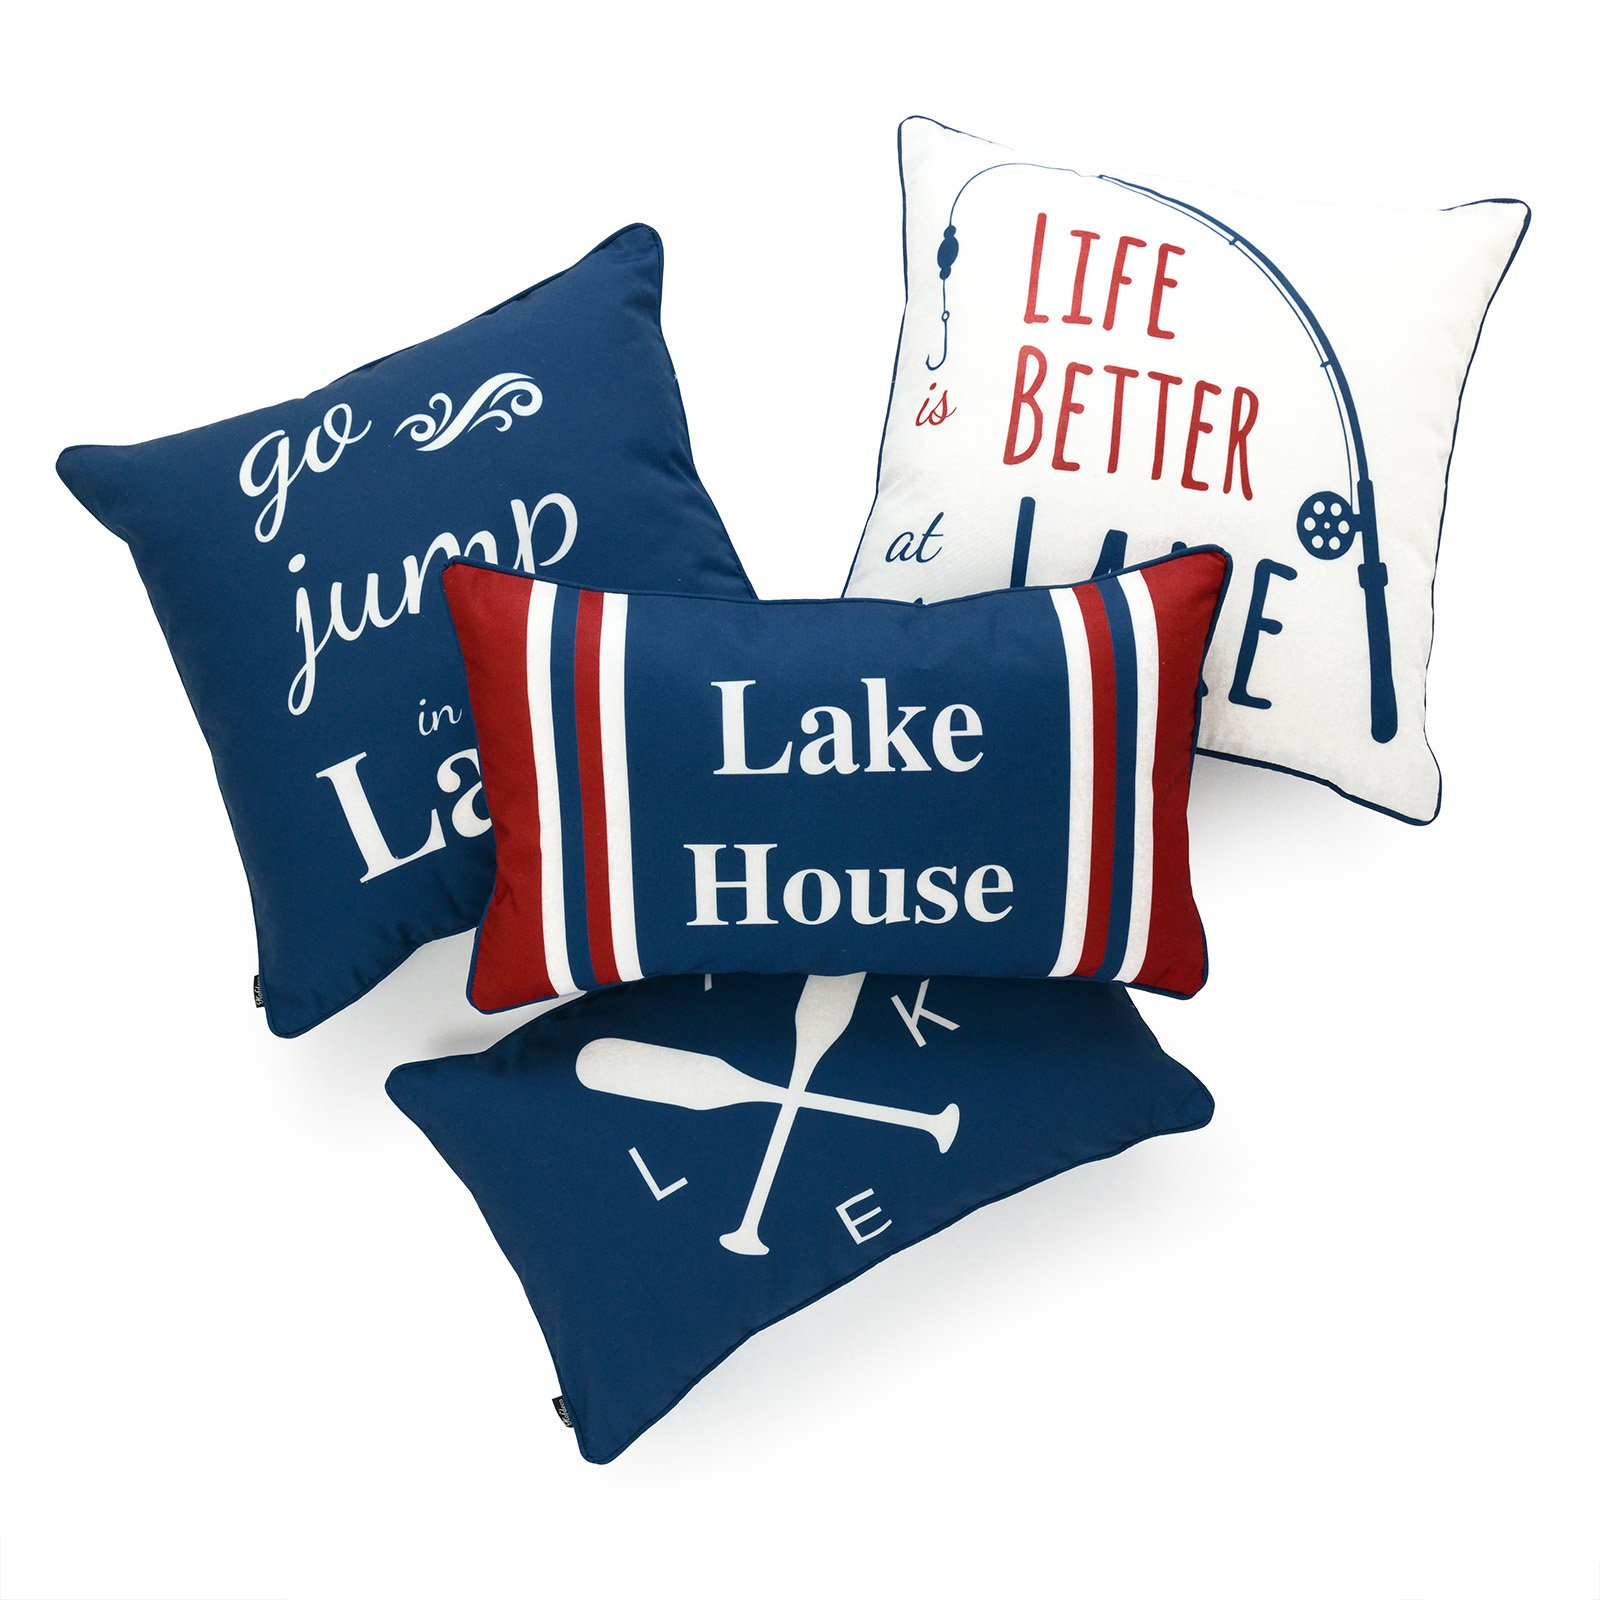 Hofdeco Lake House Indoor Outdoor Pillow Cover ONLY, Water Resistant for Patio Lounge Sofa, Navy Red White Life Better Go Jump in Lake, 18''x18'' 12''x20'', Set of 4